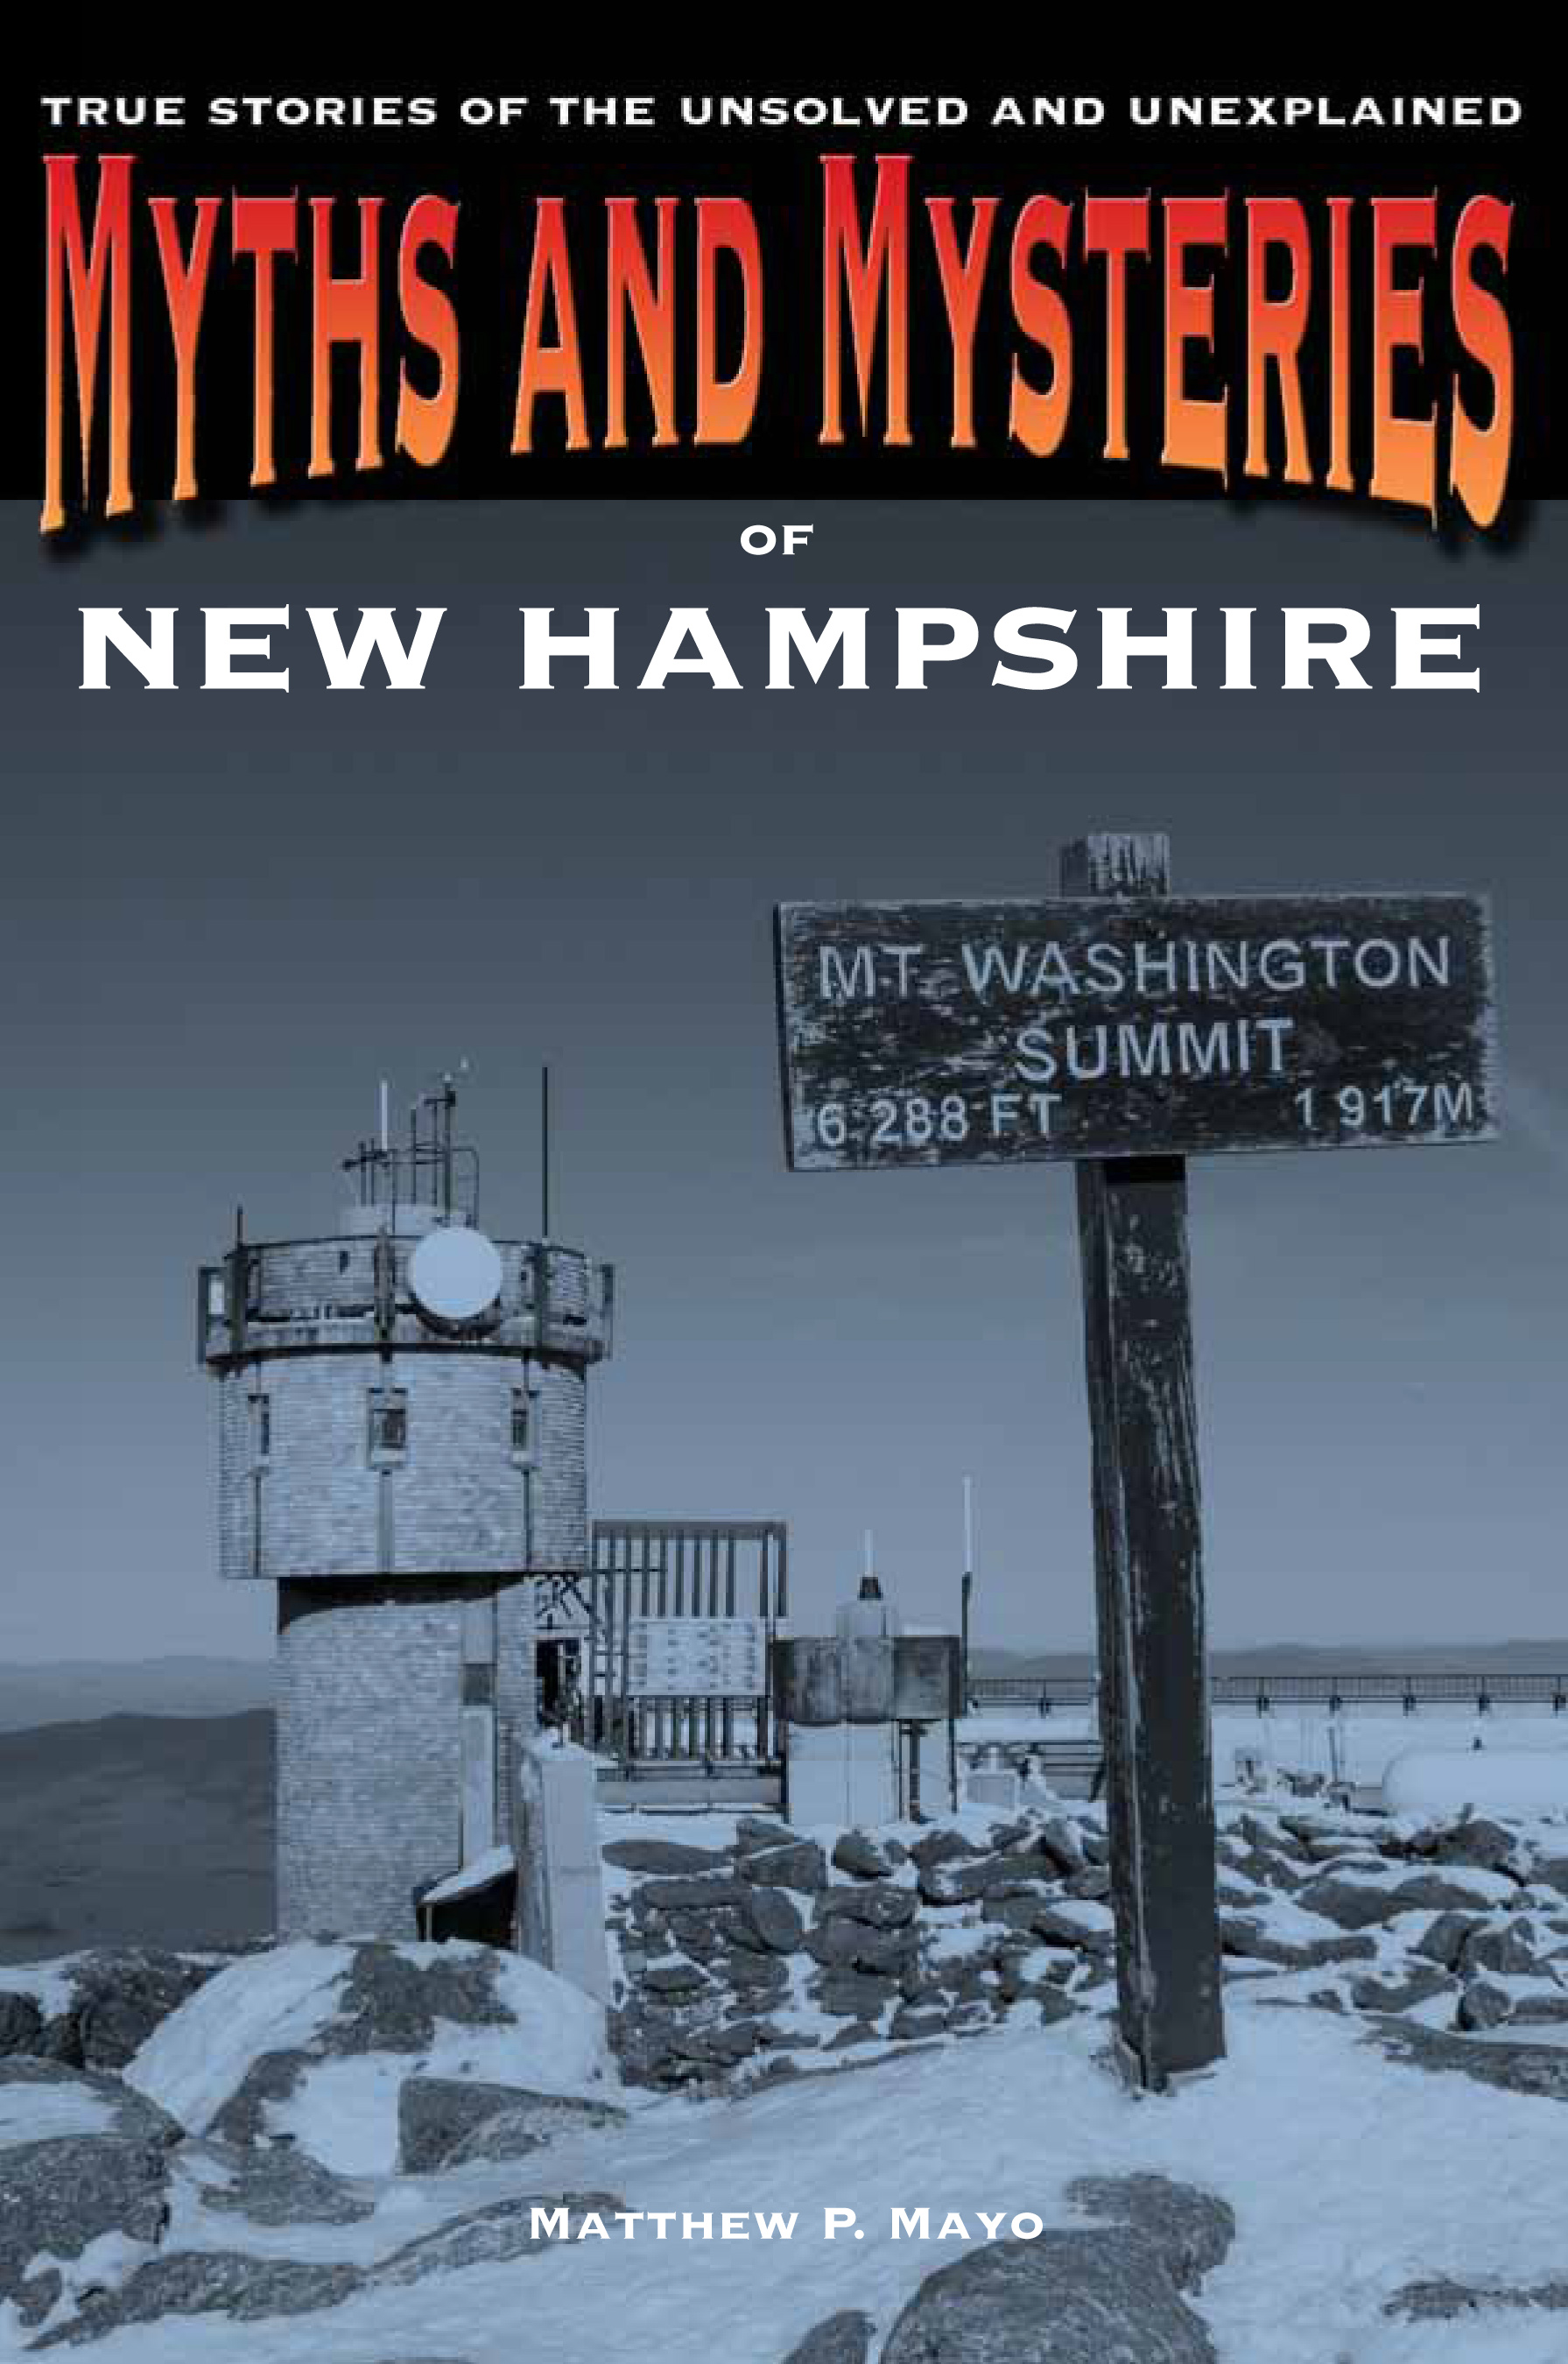 MYTHS AND MYSTERIES OF NEW HAMPSHIRE